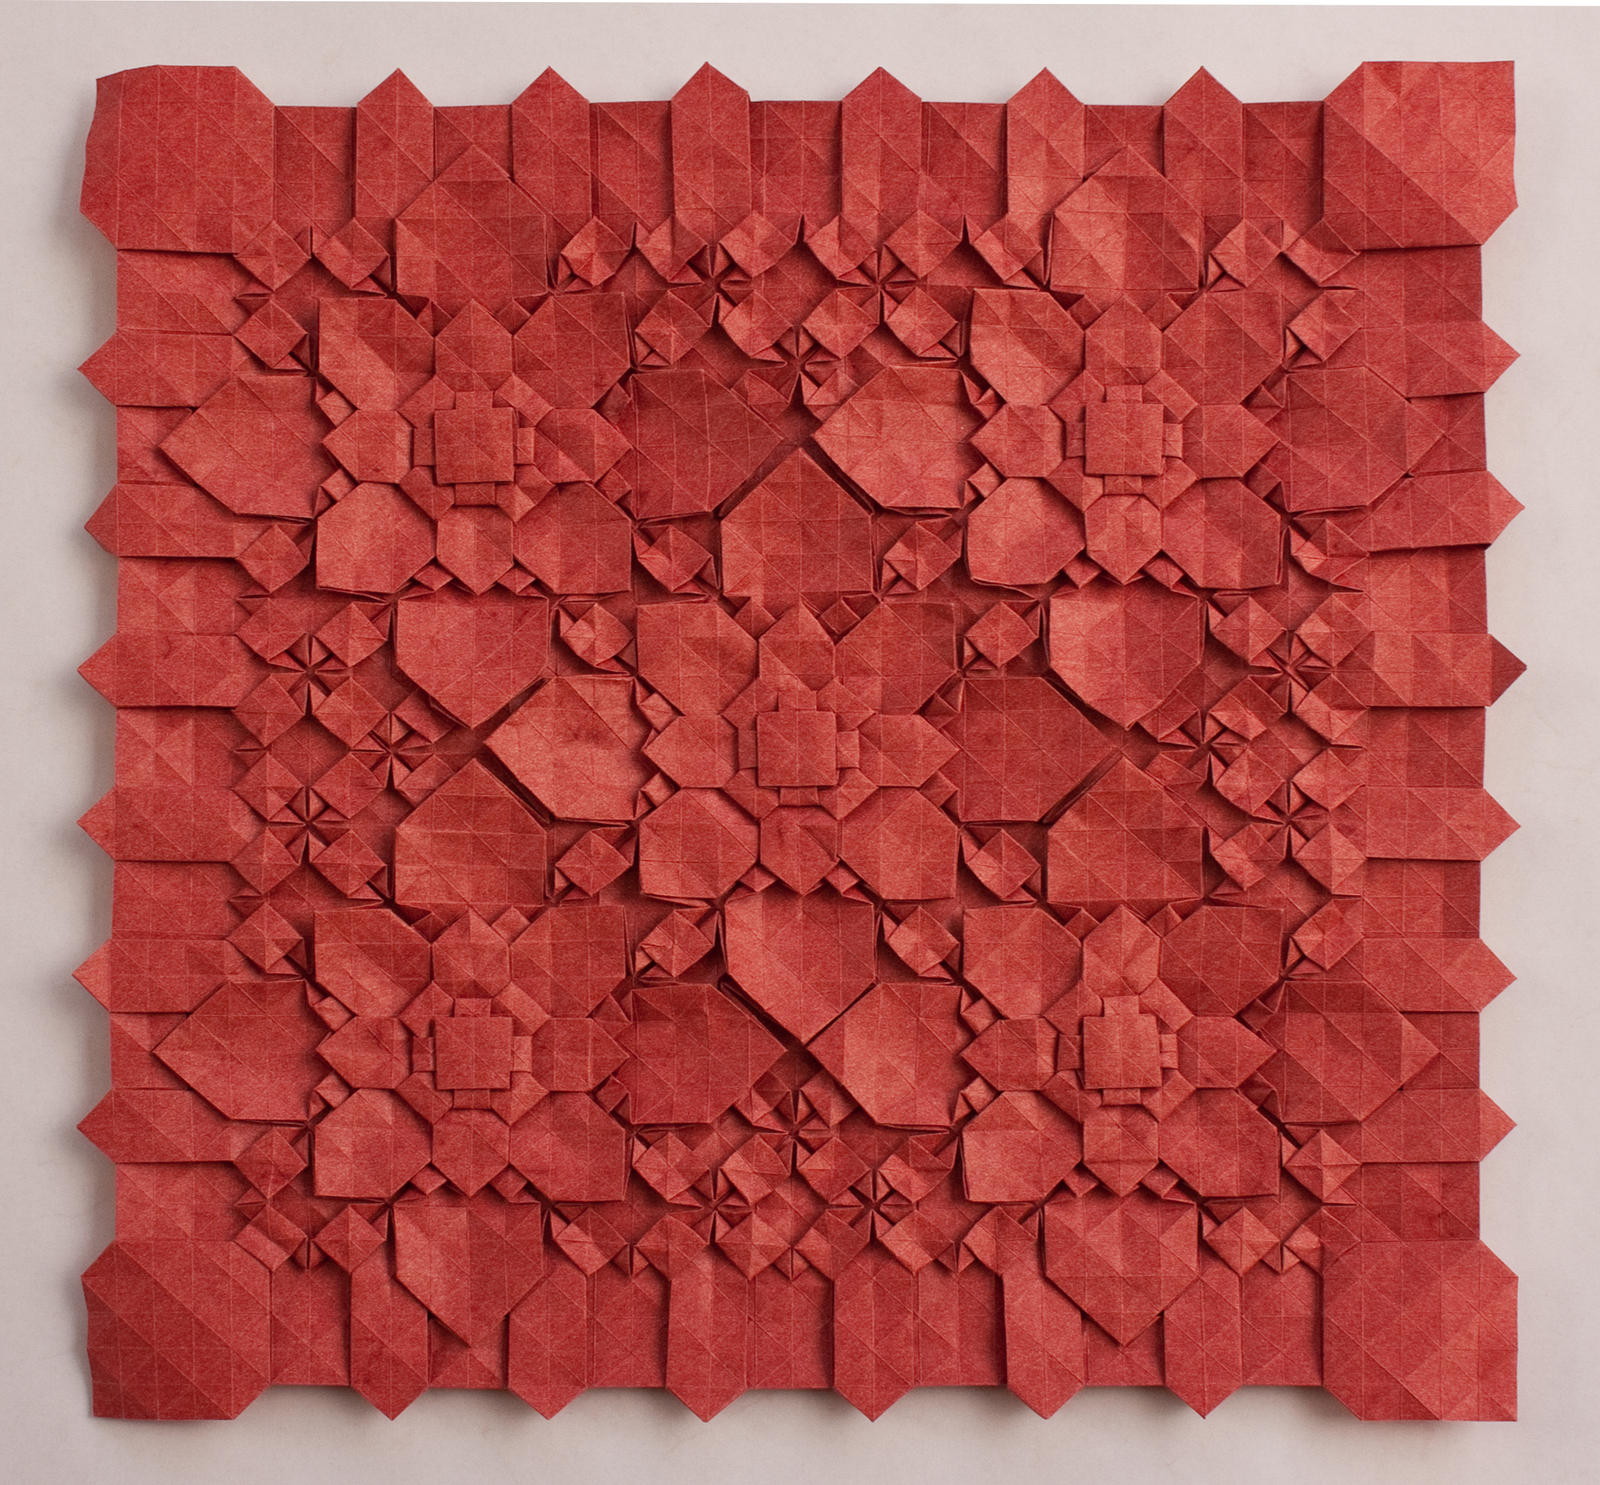 Quilt tessellation by zu-sha